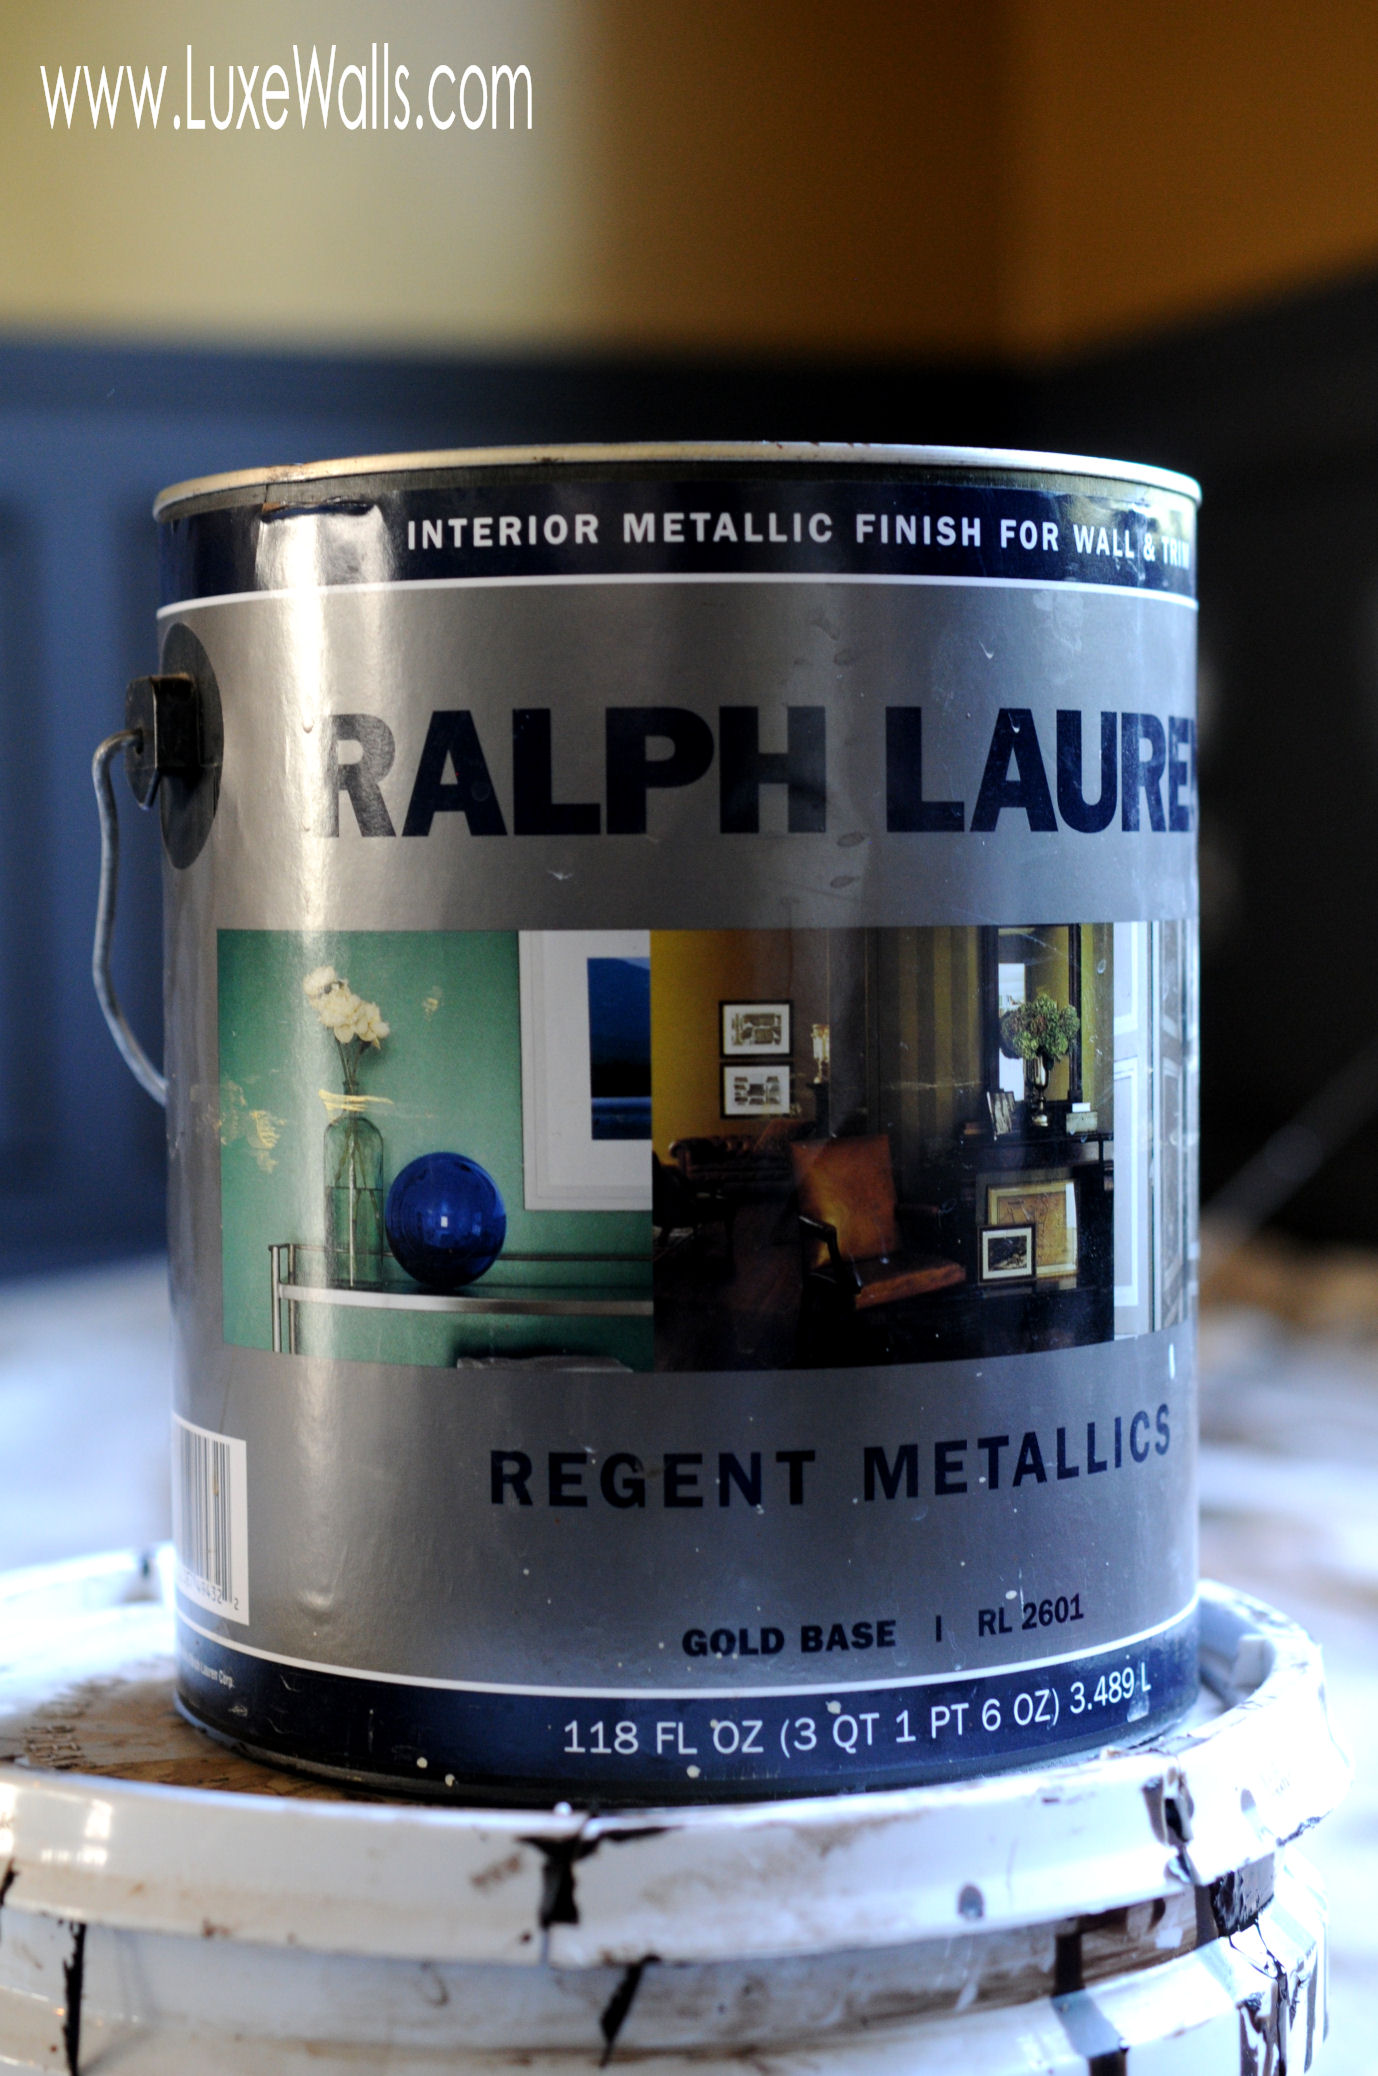 Ralph Lauren Regent Metallics, just one of several products used to complete this transformation